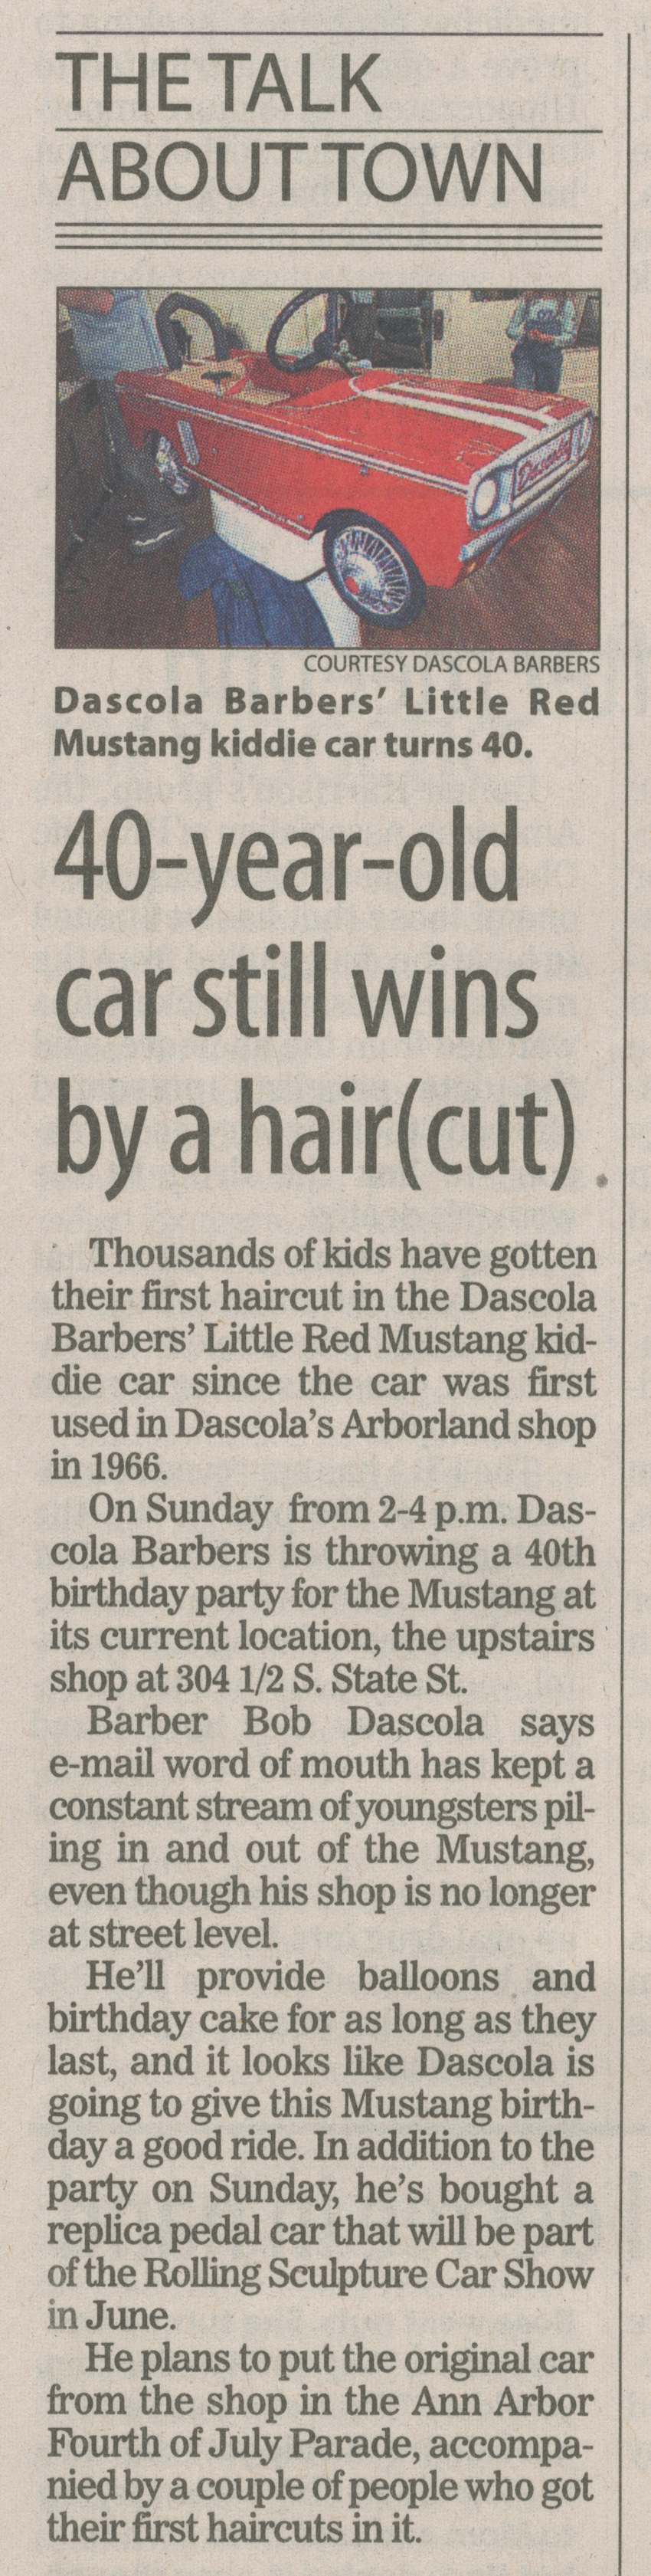 The Talk About Town - 40-Year-Old Car Still Wins By A Hair (Cut) image